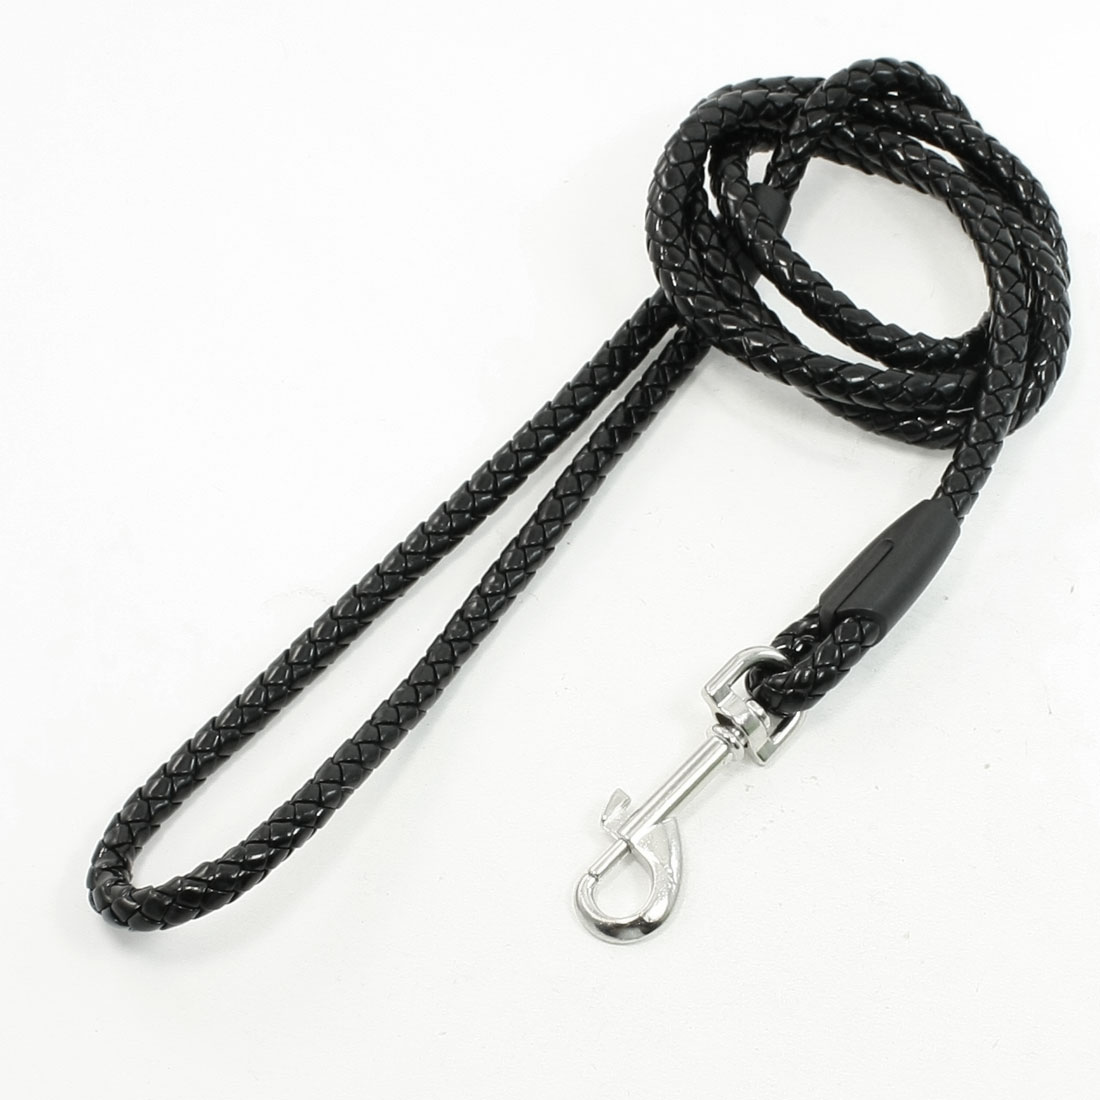 1.12M Losbter Clasp Hook to Lead Leash Pet Dog Traction Rope Black